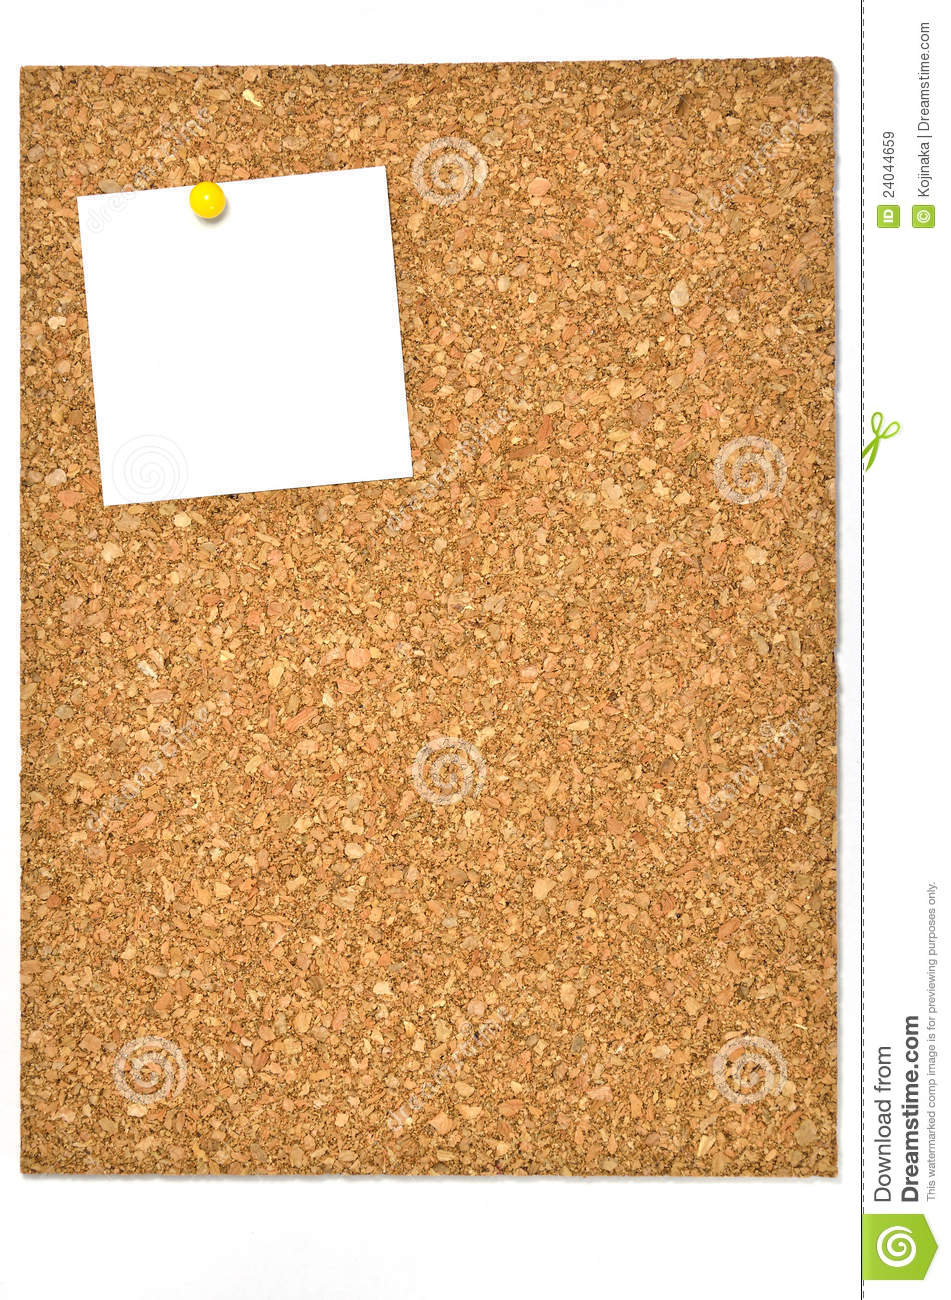 blank cork board - photo #27